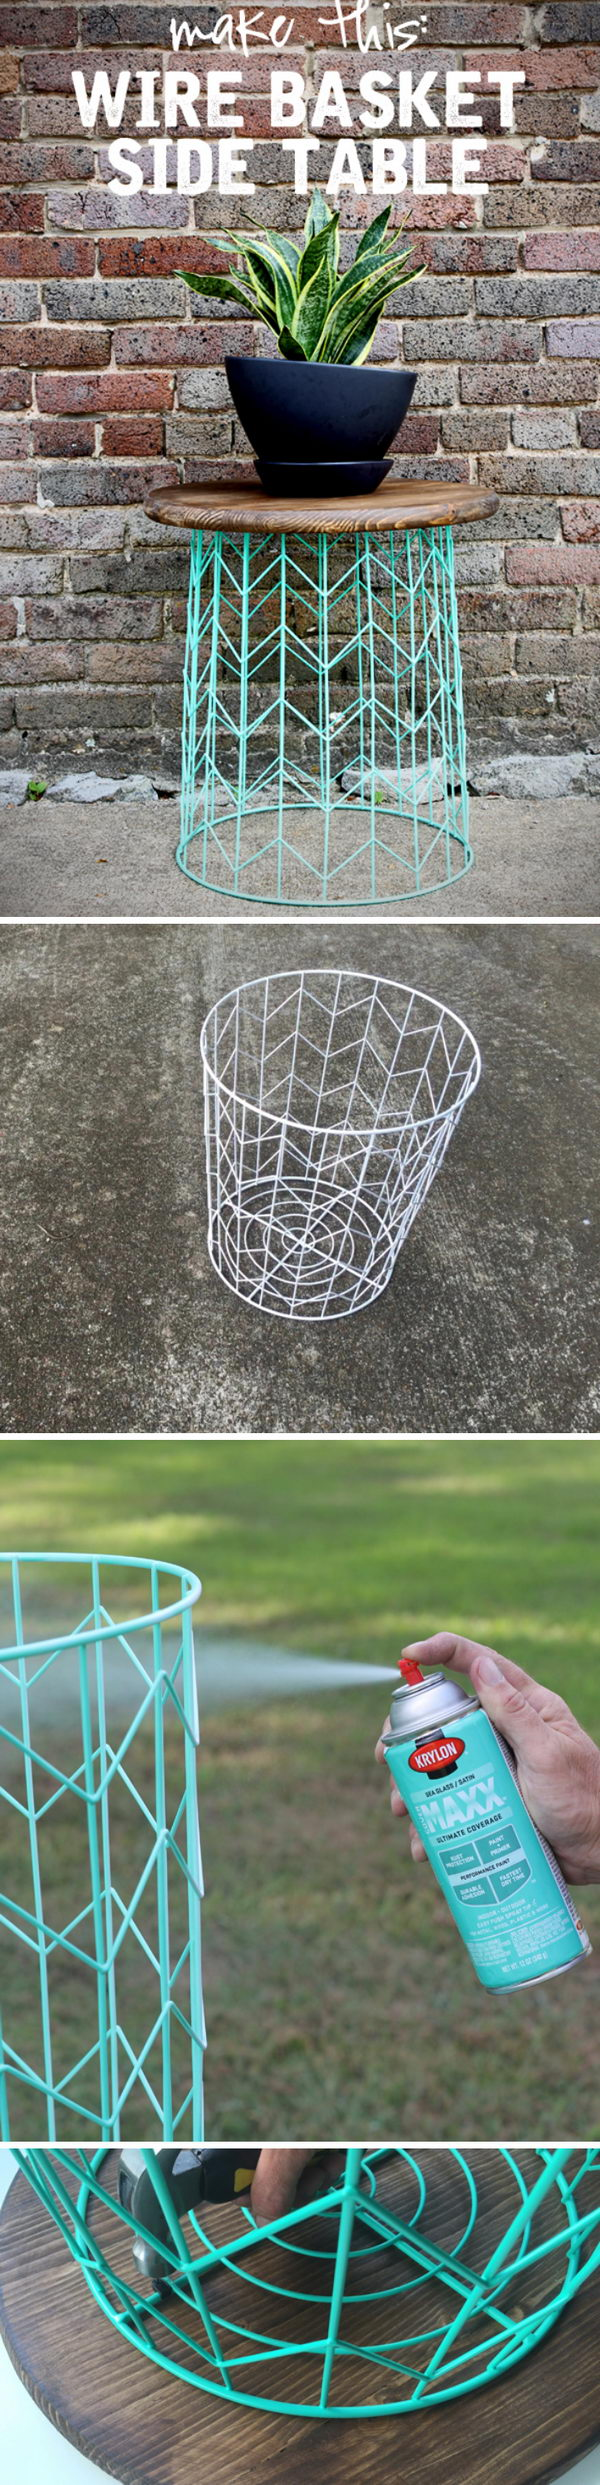 Wire Basket Side Table.